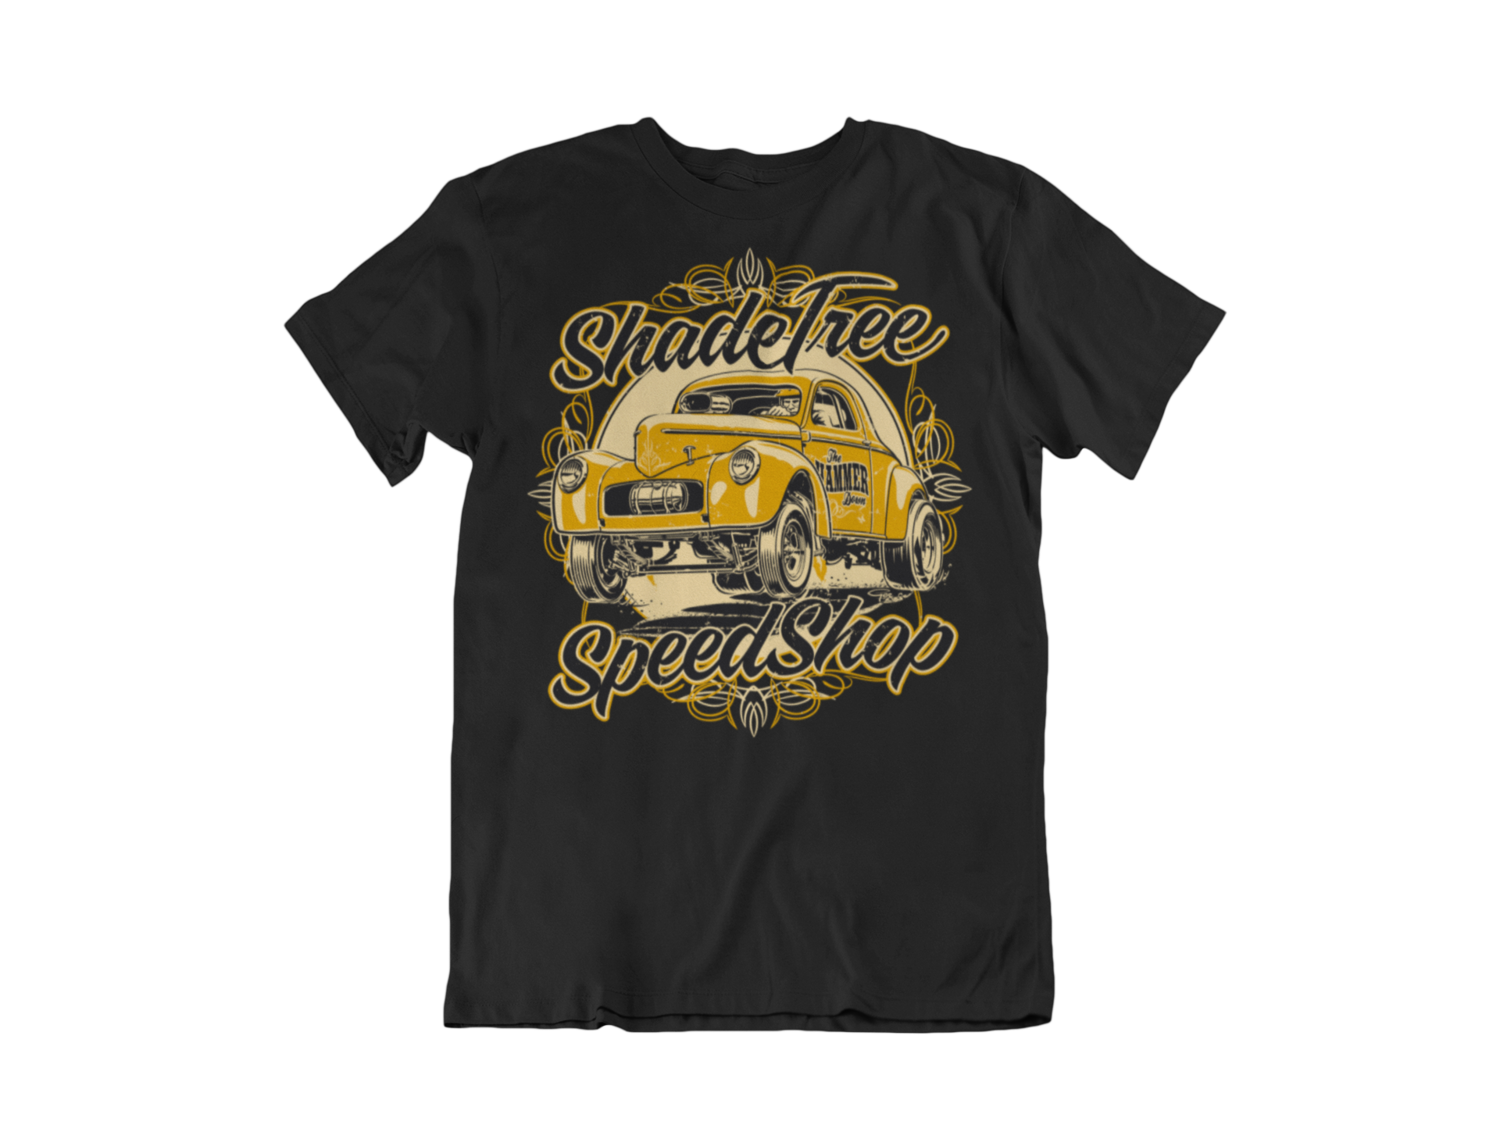 """SHADE TREE SPEED SHOP """"Willys"""" T-SHIRT MAN BY Ger """"Dutch Courage"""" Peters artwork"""